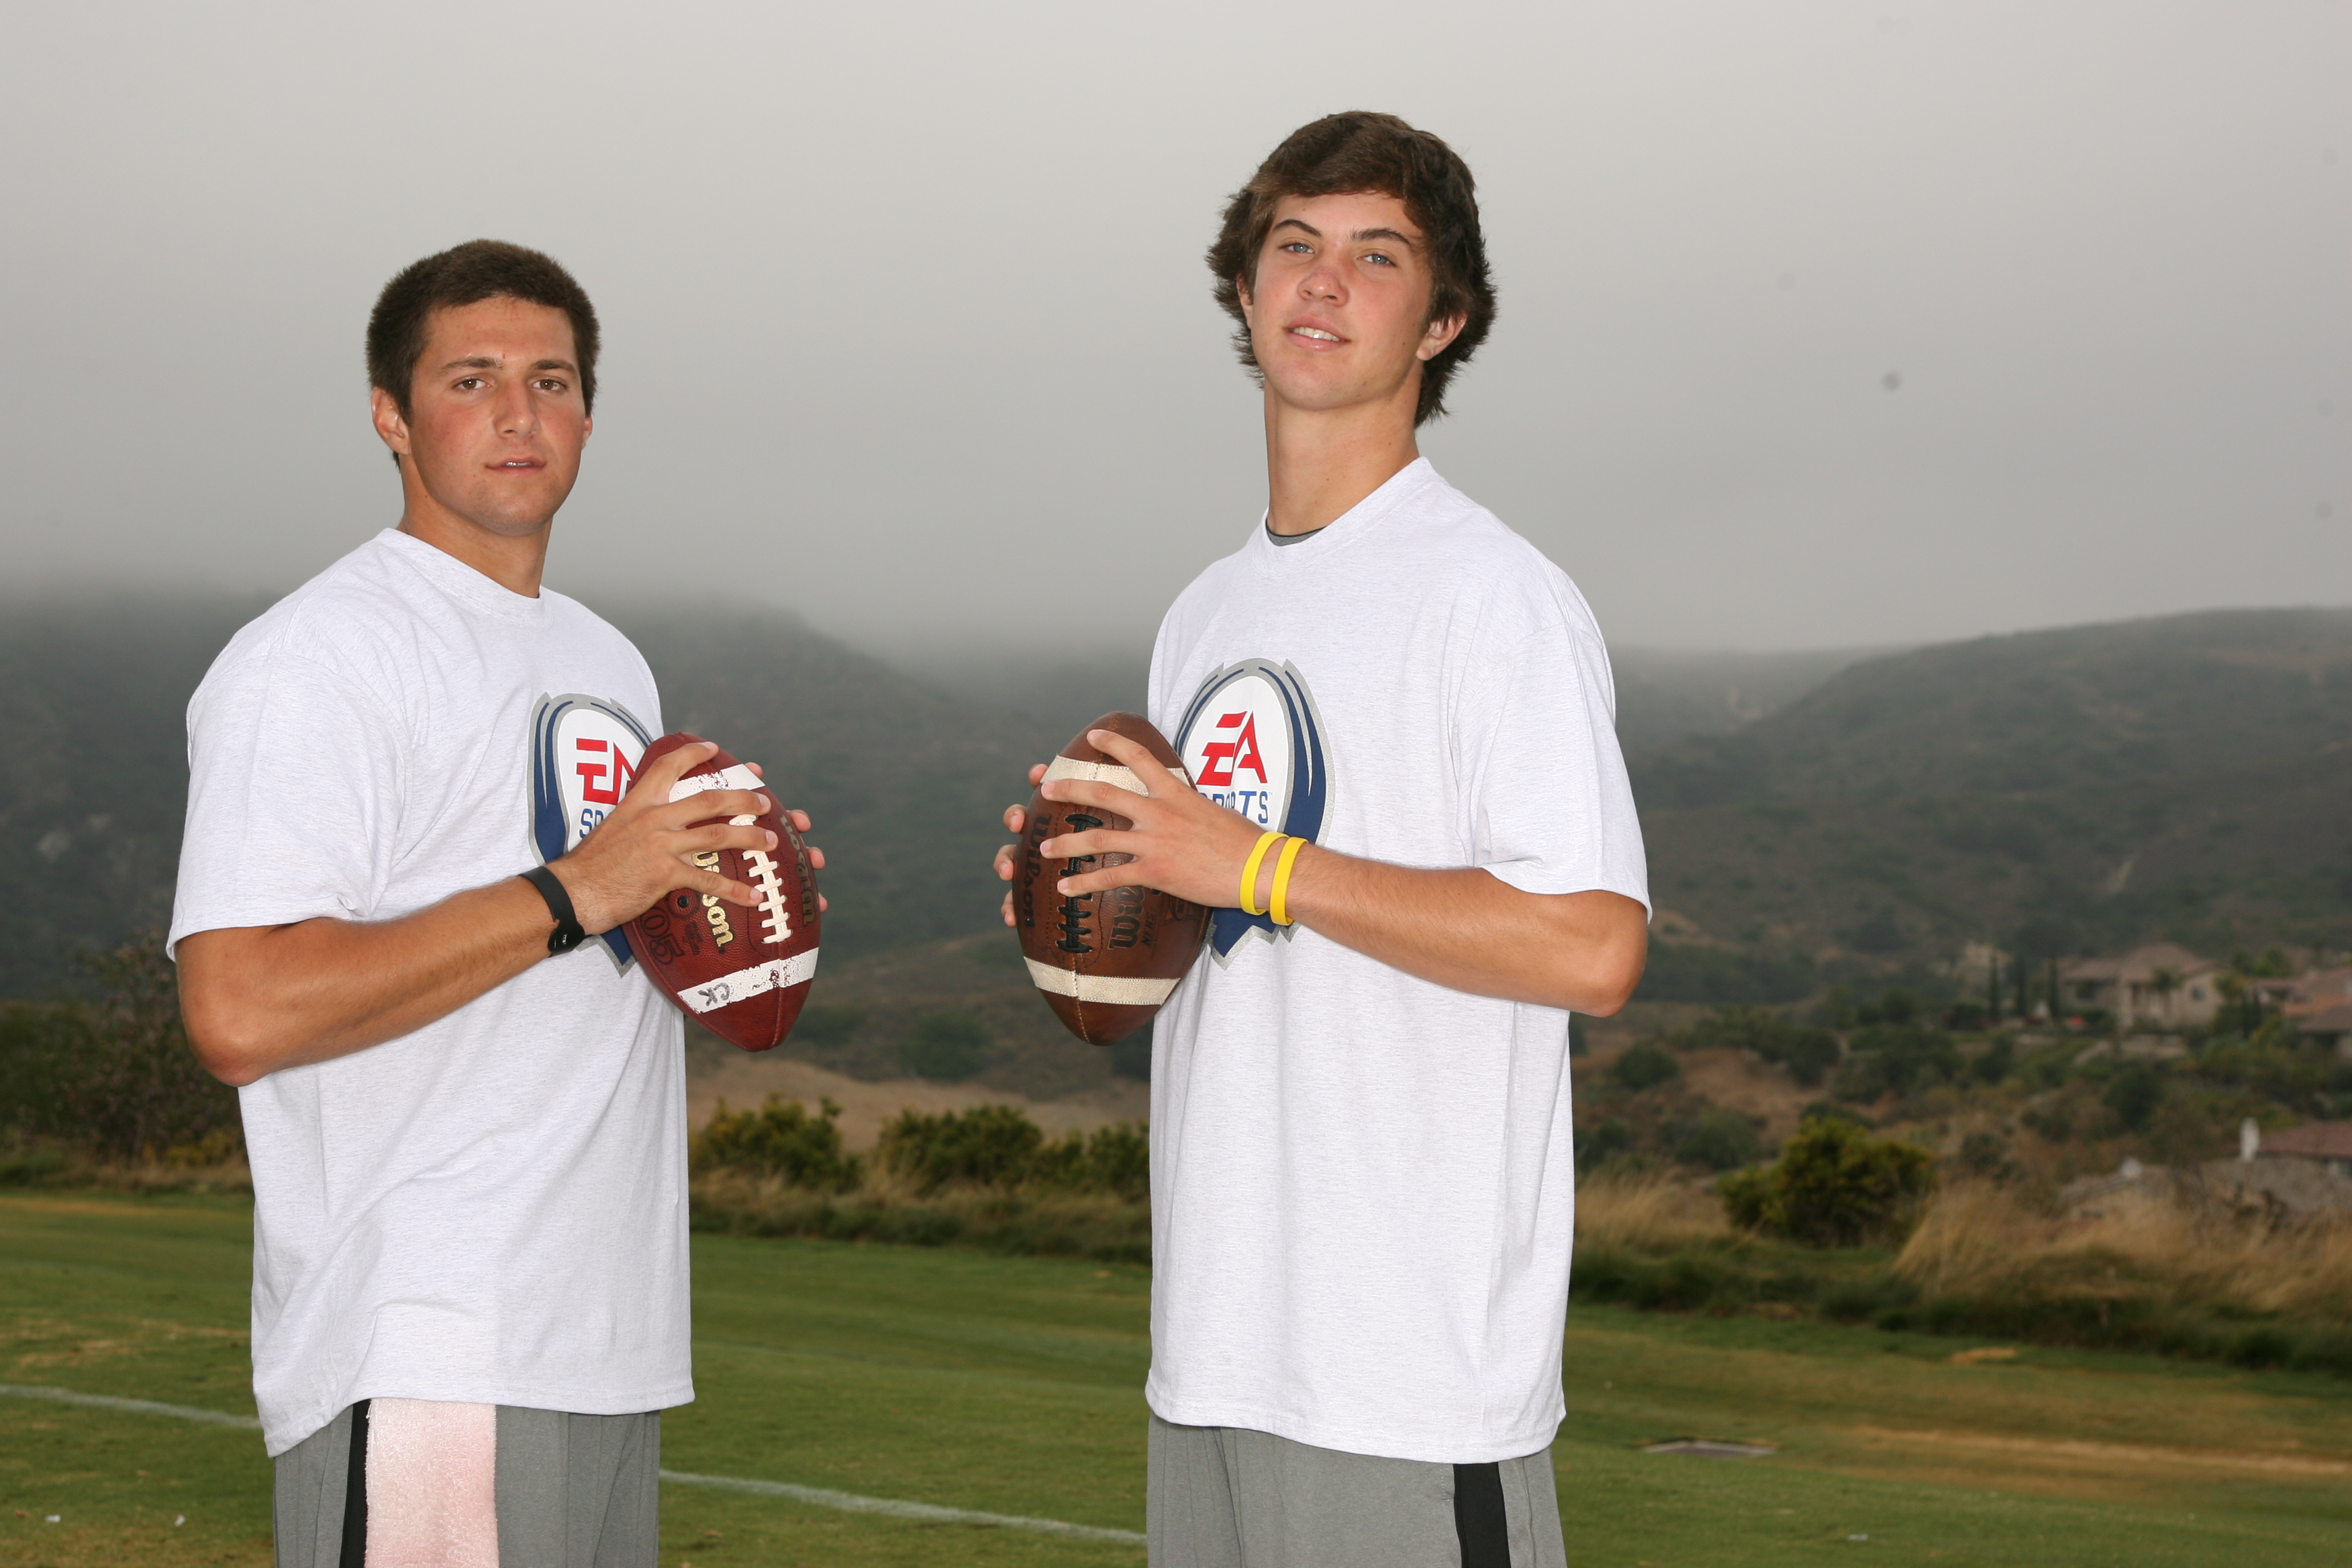 Cody Kessler and Evan Crower